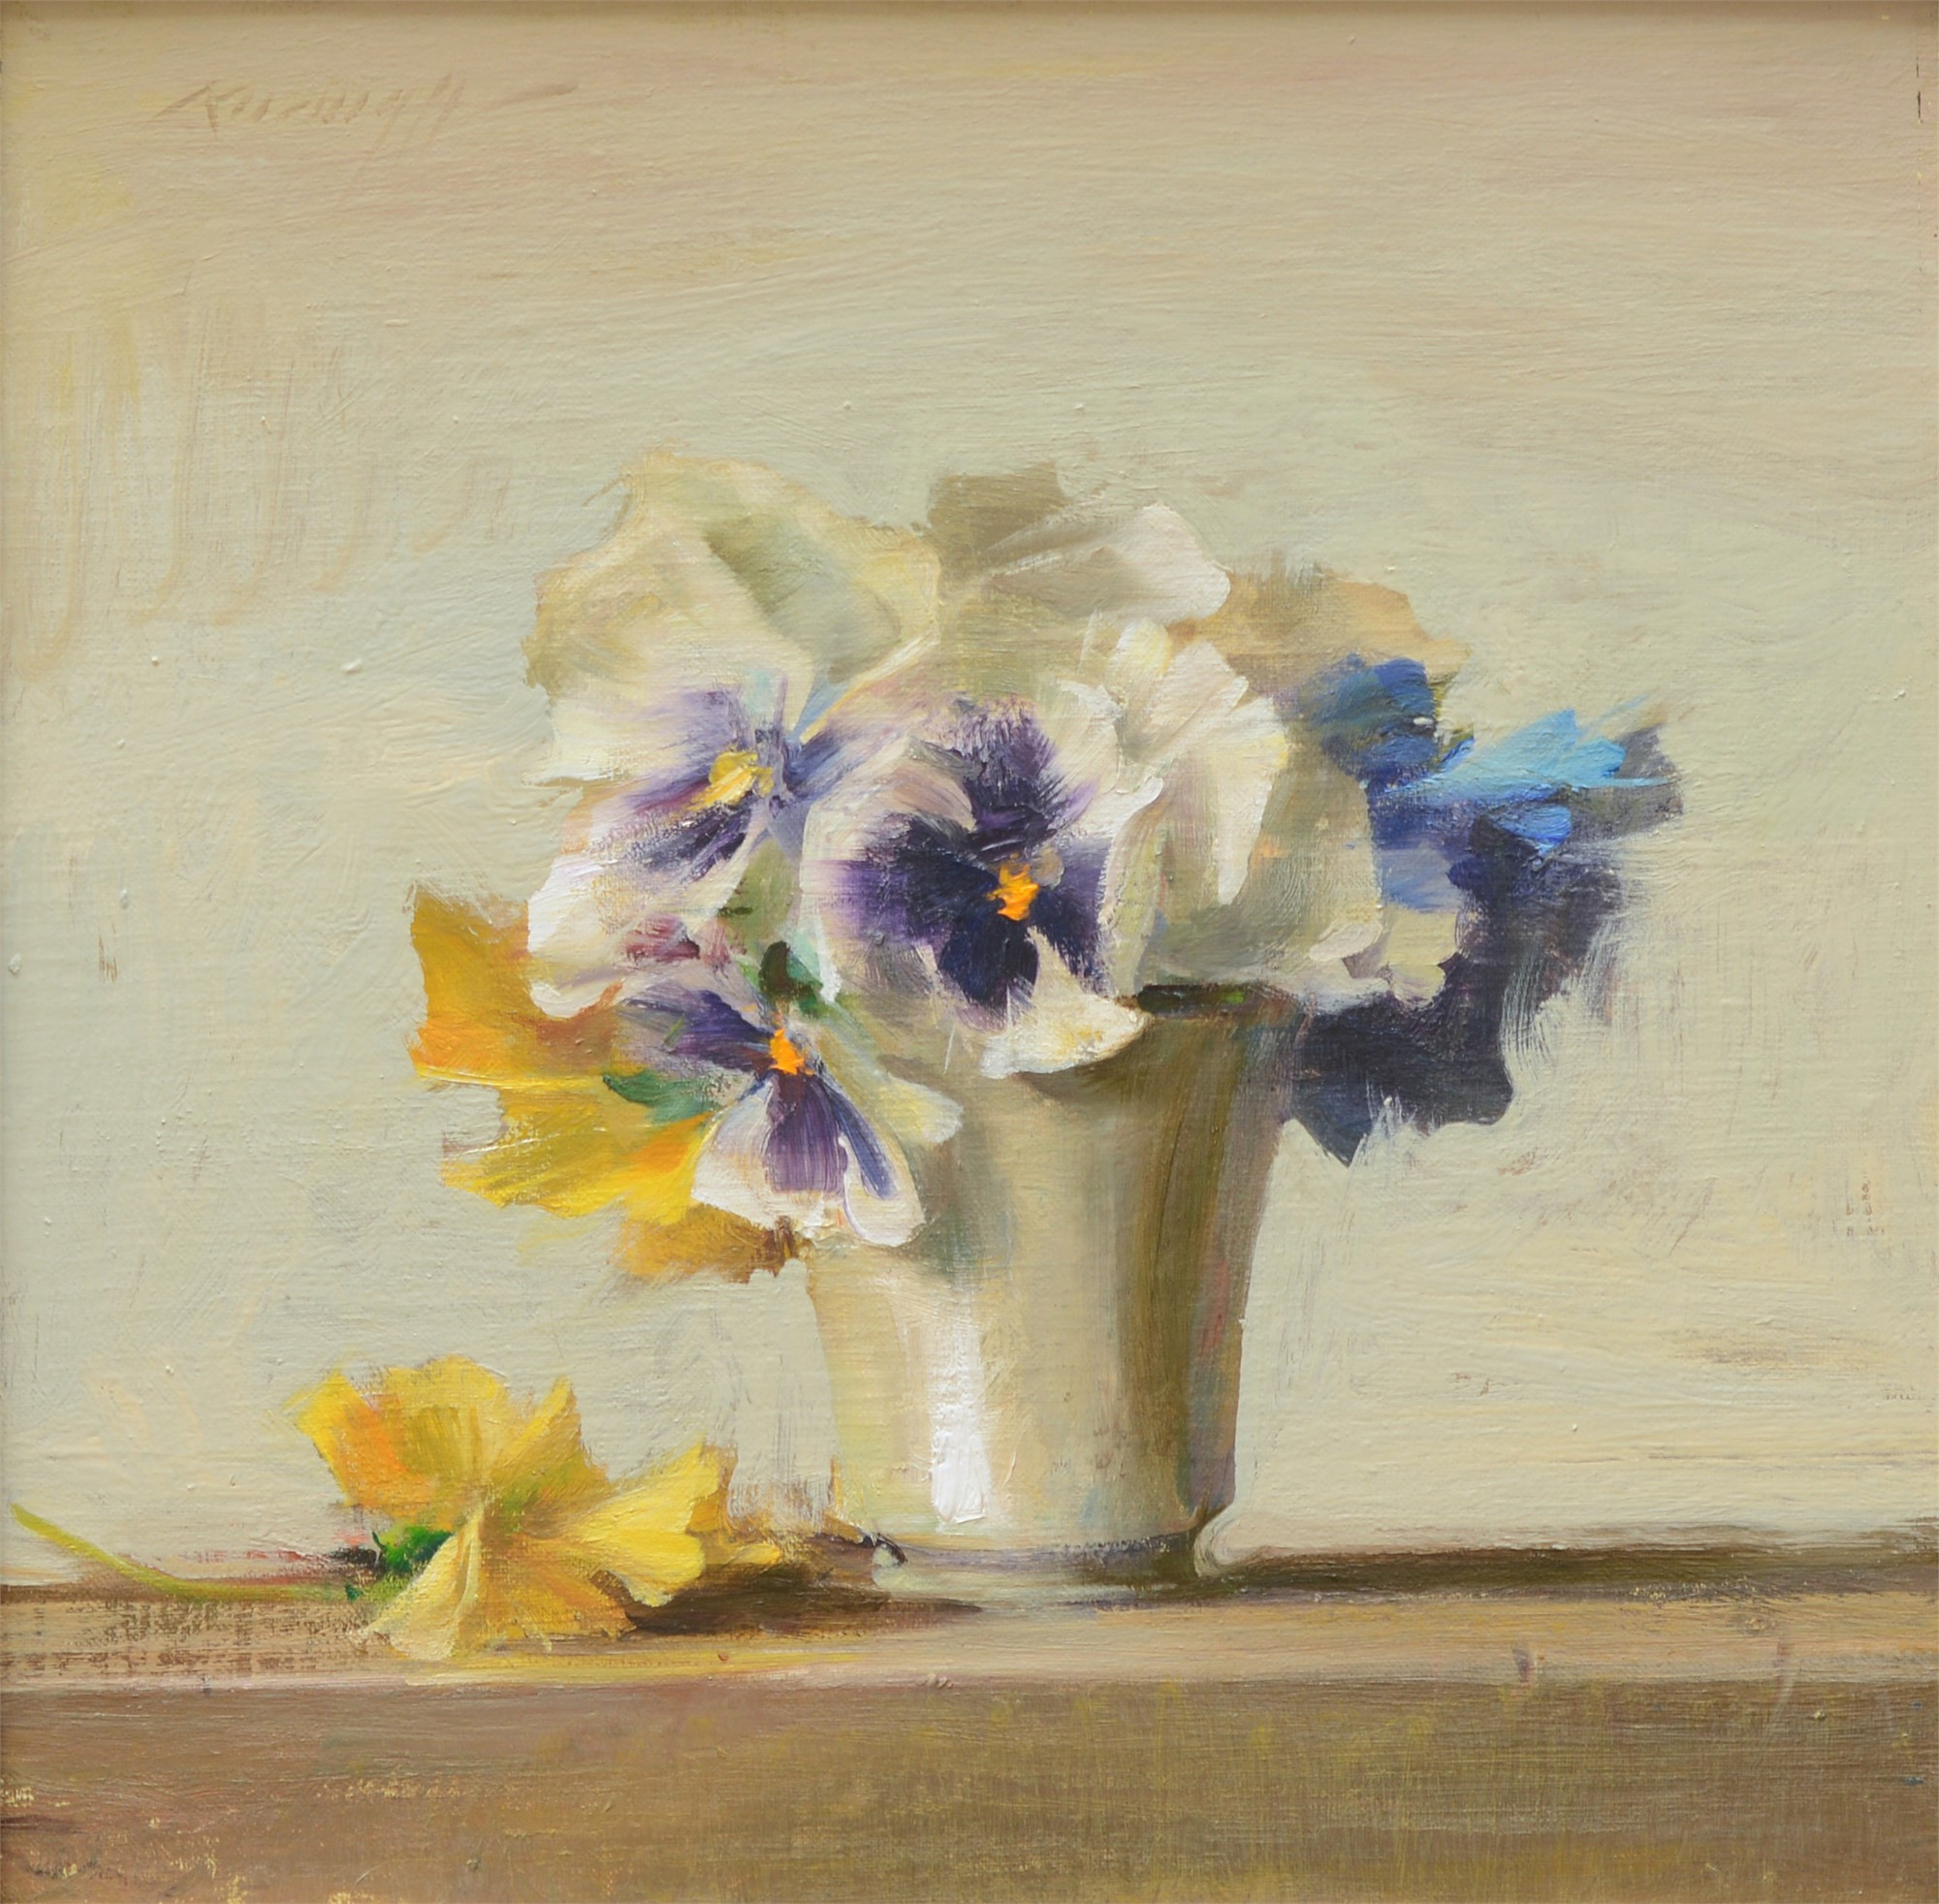 Pansies in White by Quang Ho